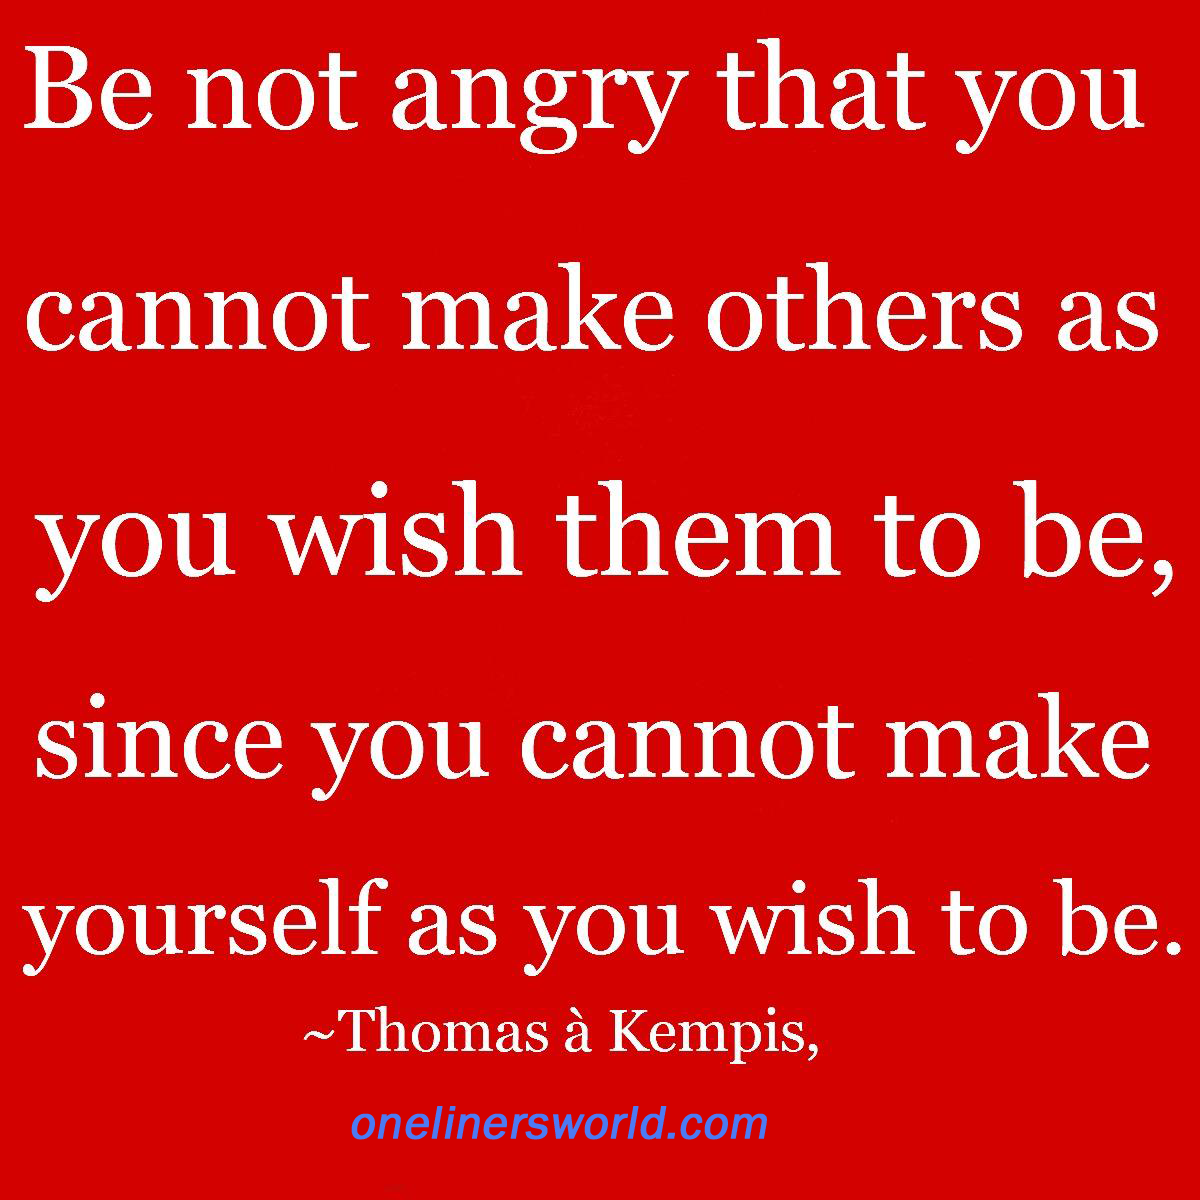 Quotes About Anger And Rage: Feeling Angry Quotes. QuotesGram